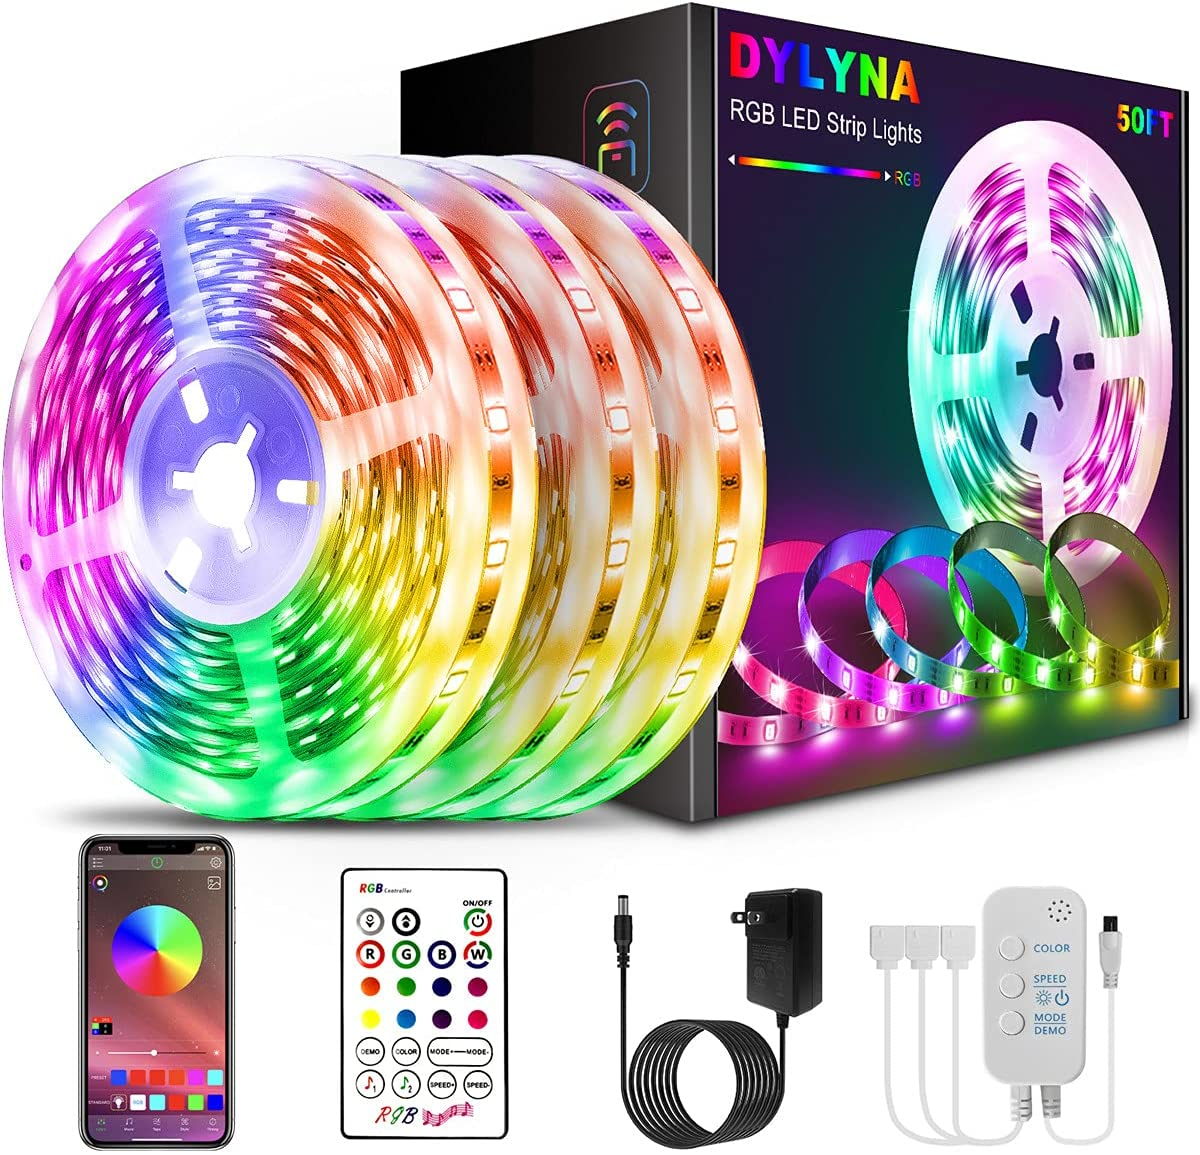 50ft Led Lights for Bedroom APP Colorado Springs Mall New sales Control Strip DYLYNA